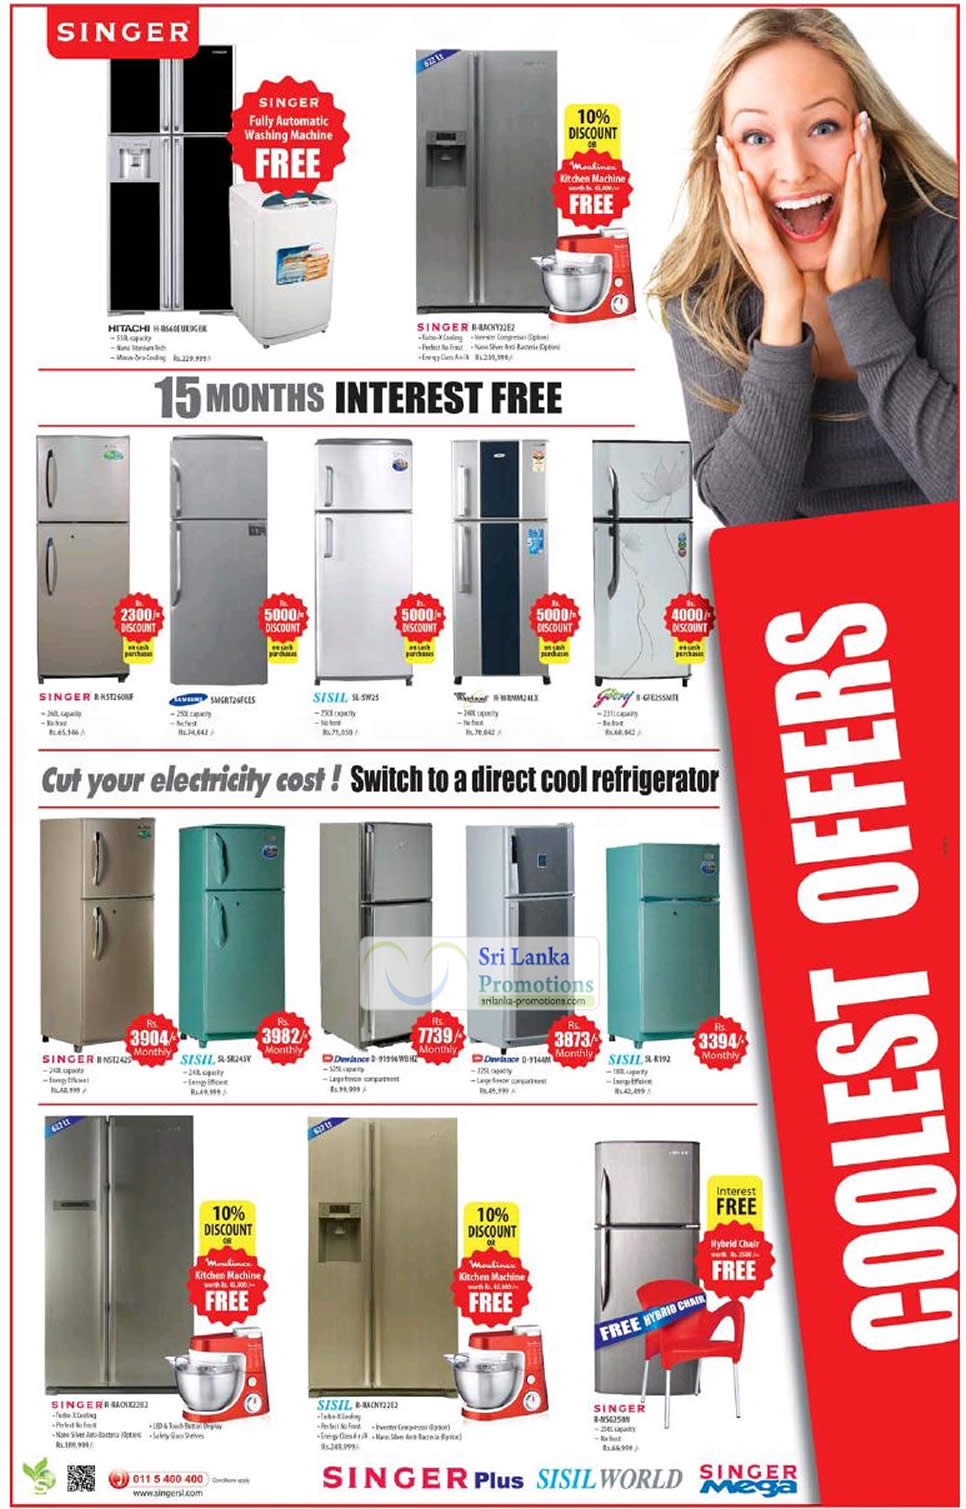 Singer Fridge Refrigerator Promotion Offers 19 Aug 2012